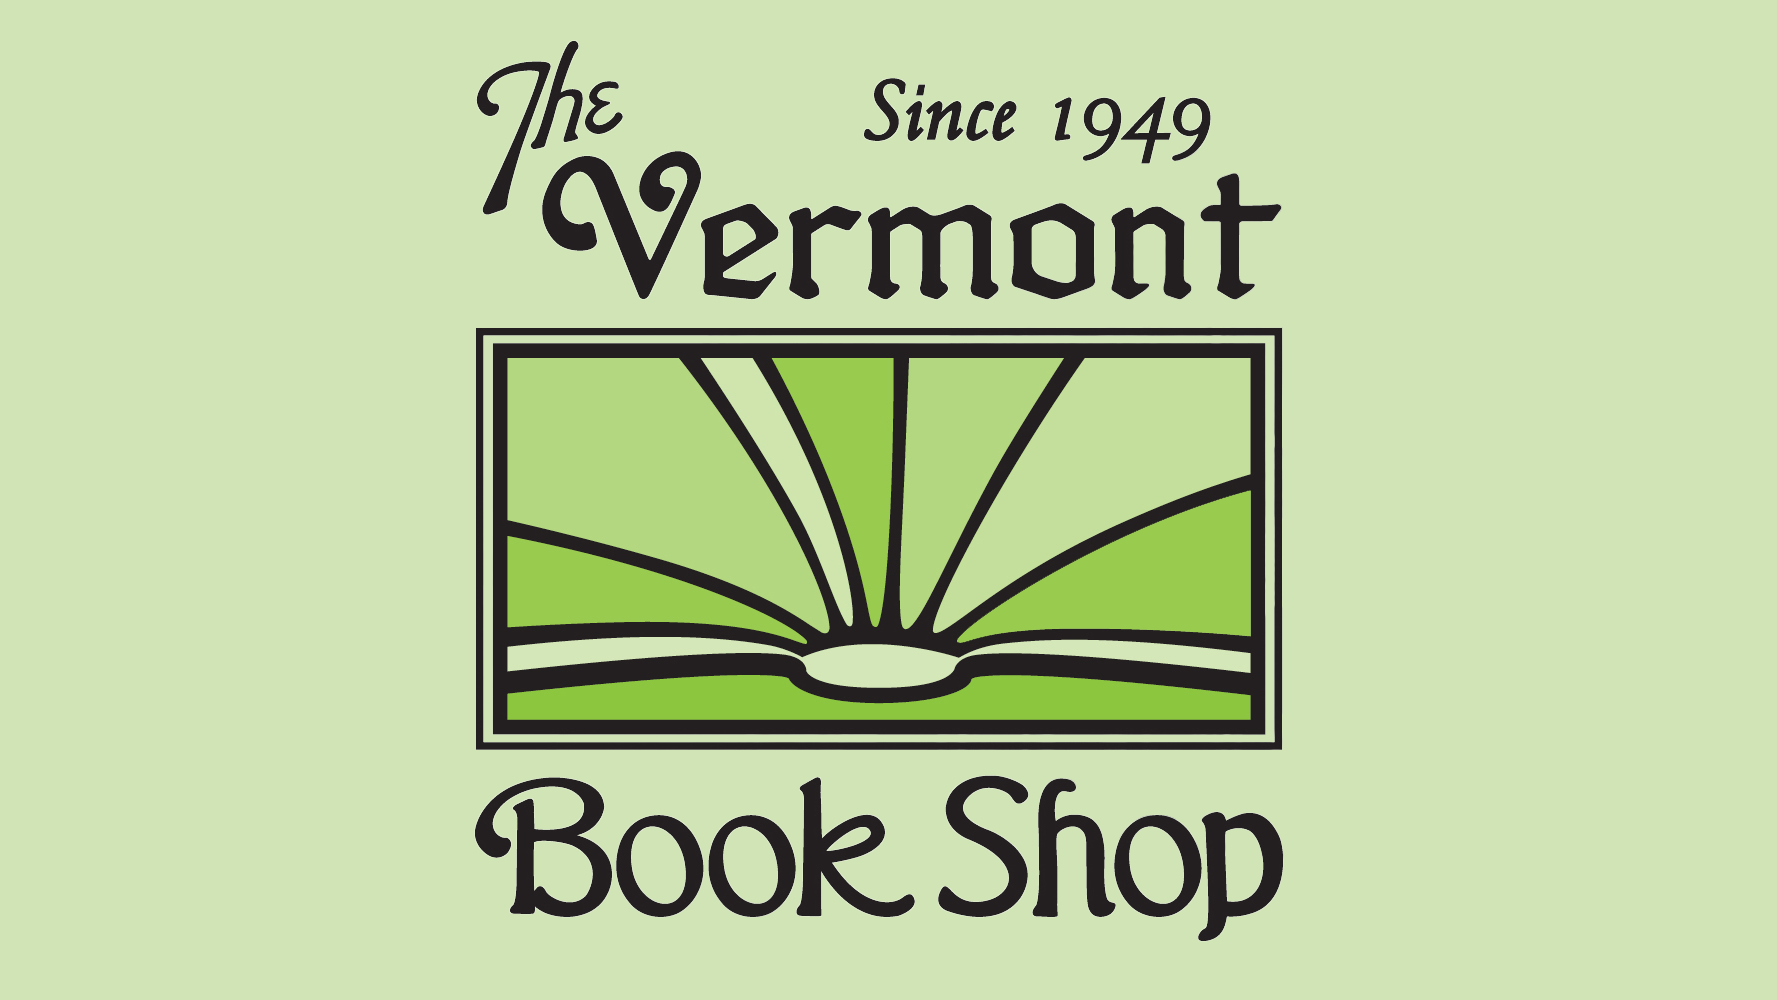 The Vermont Book Shop